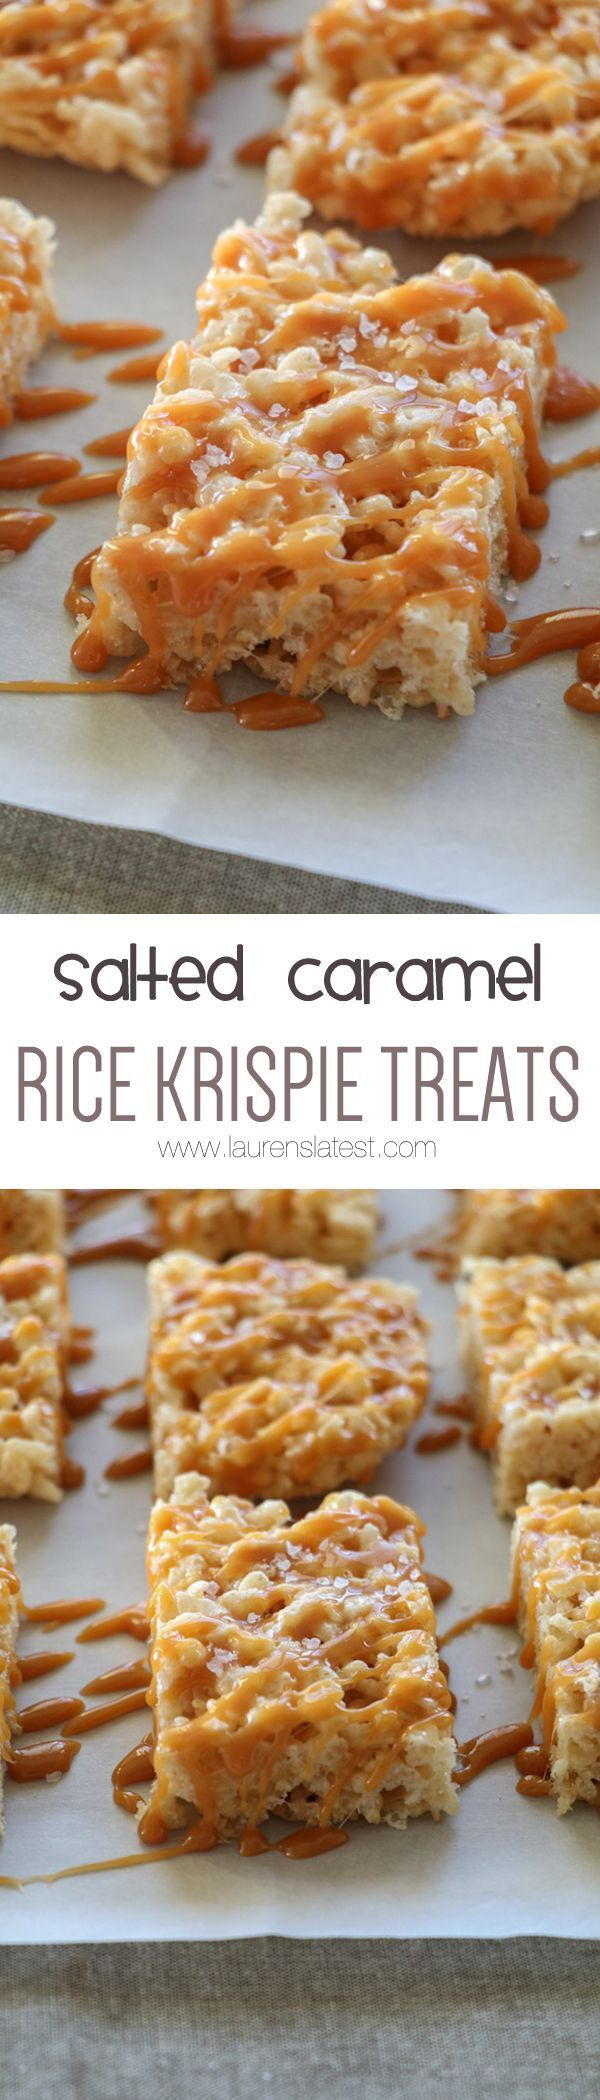 Easy, no bake, and dreamy! Say good-bye to self-control!